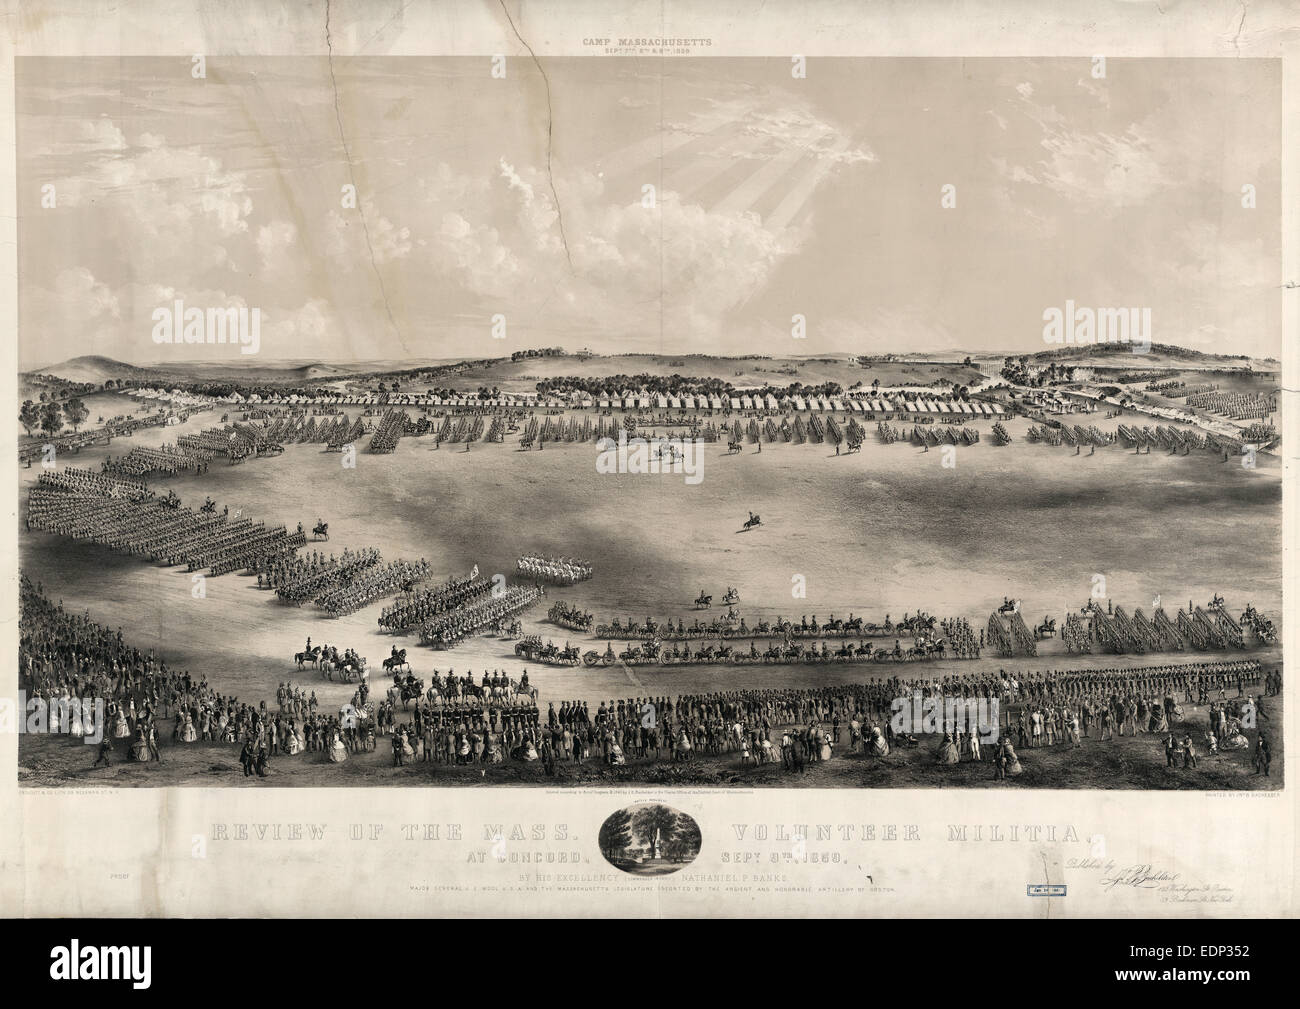 Review of the Mass. volunteer militia, at Concord, Sept. 9, 1859, by his excellency (commander in chief) Nathaniel - Stock Image